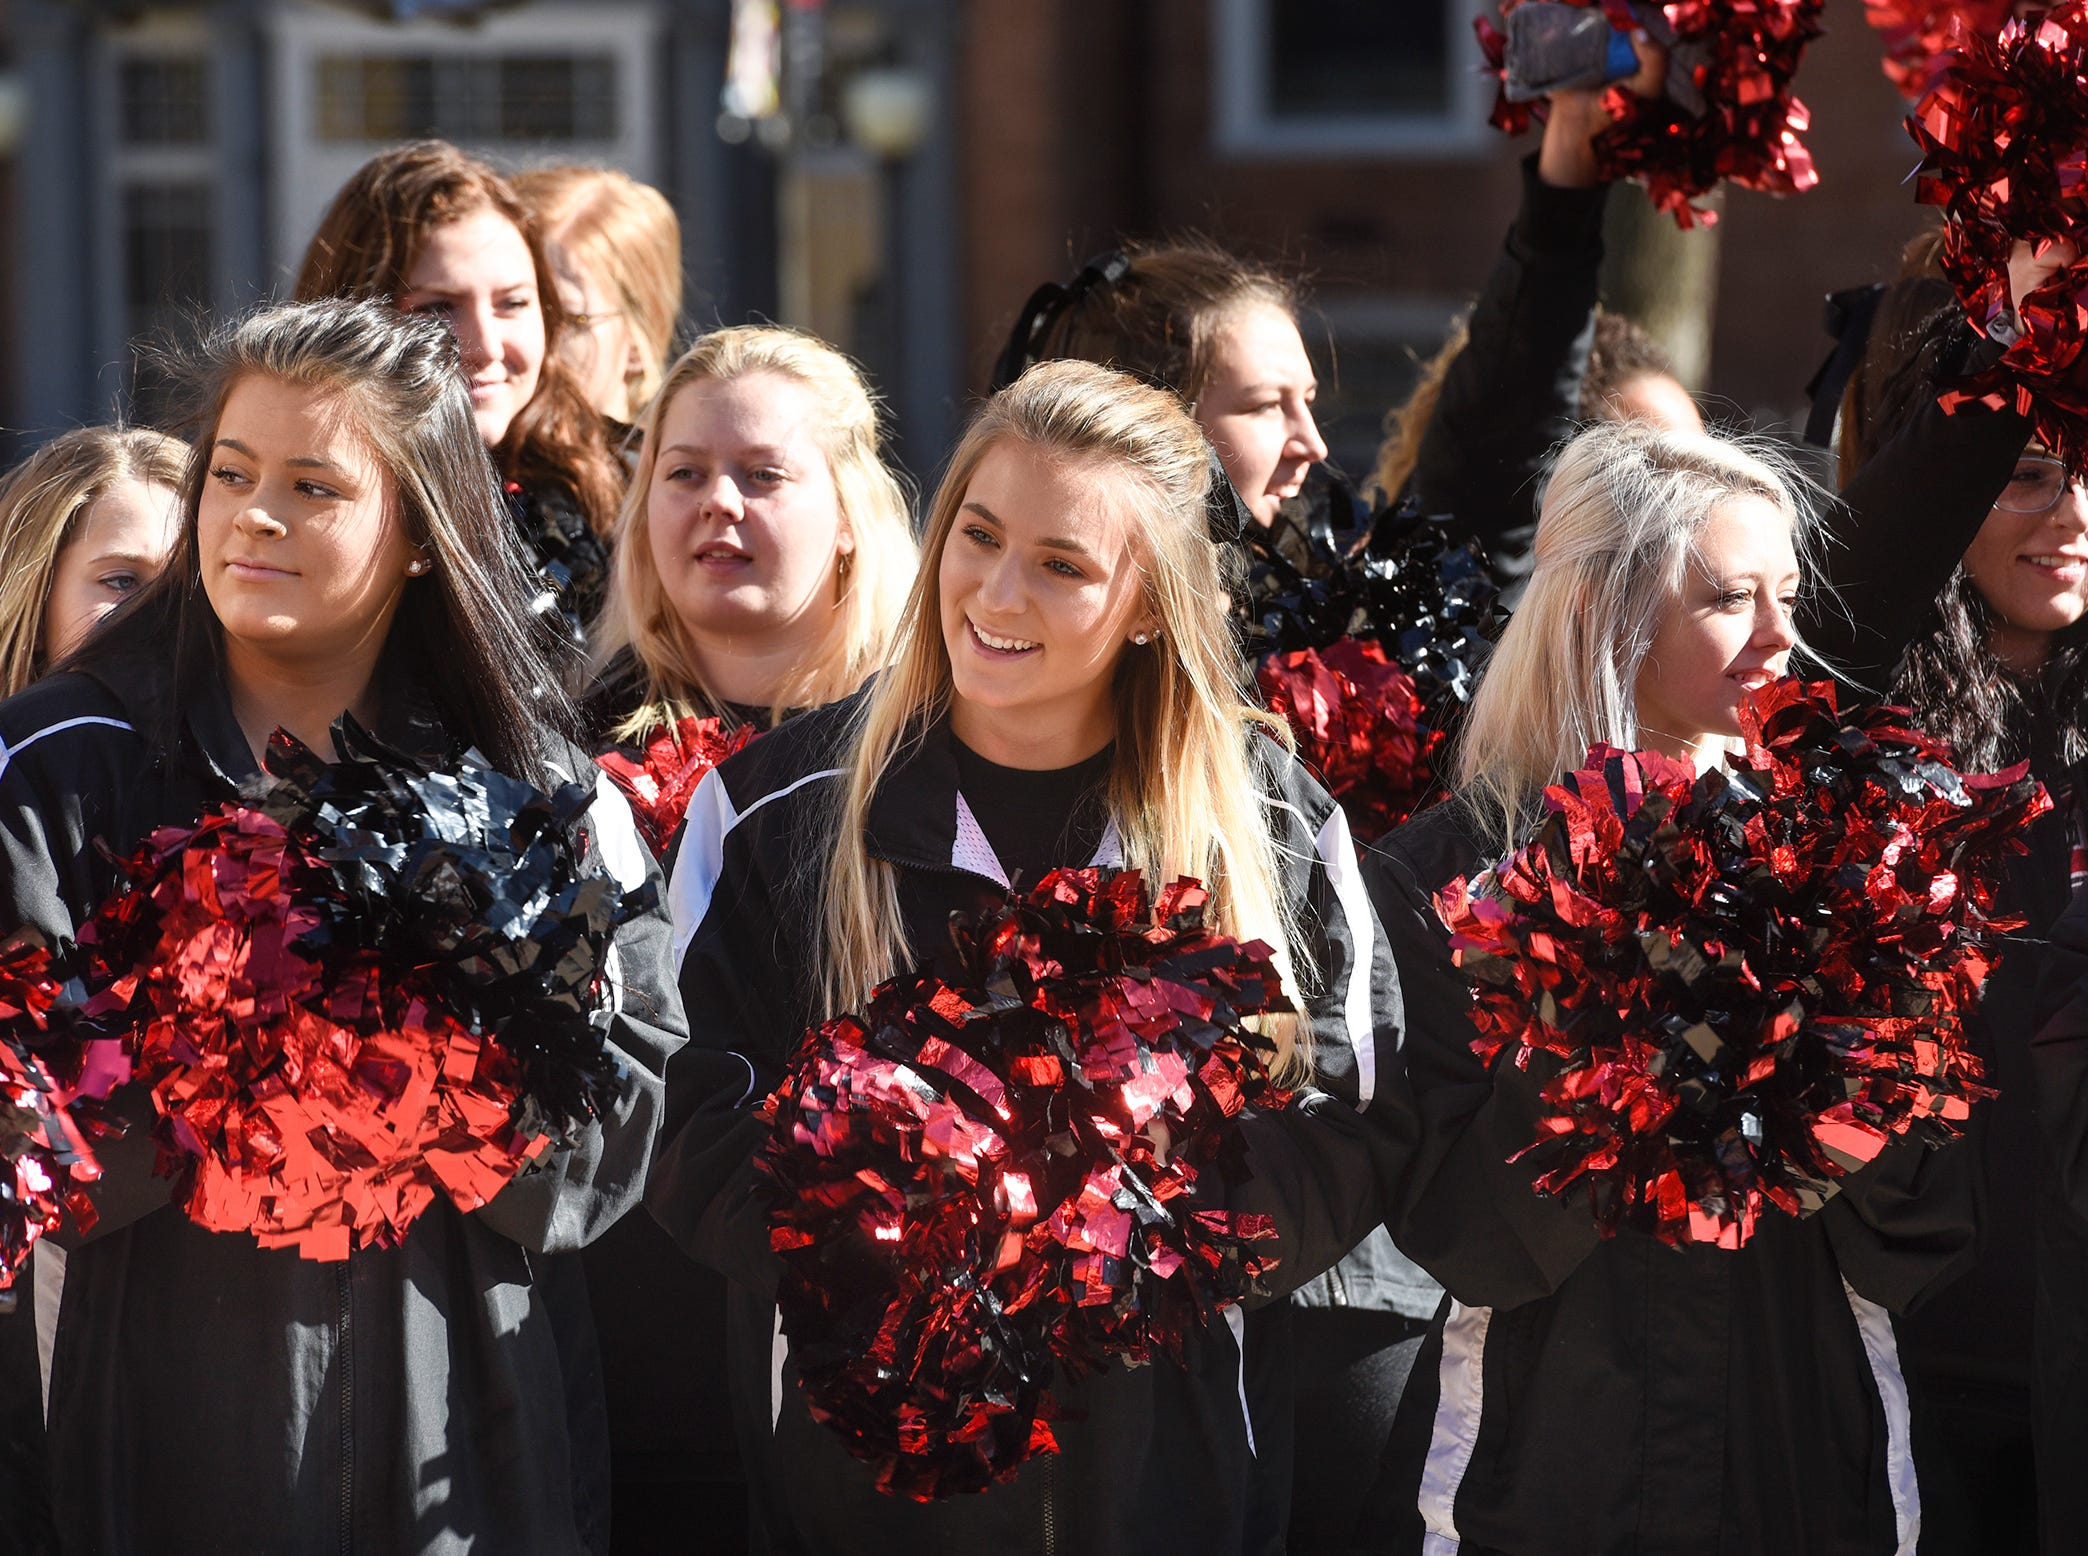 St. Cloud State University cheer team members smile during homecoming kick-off activities Wednesday, Oct. 17, at St. Cloud State University's Atwood Memorial Center Mall.